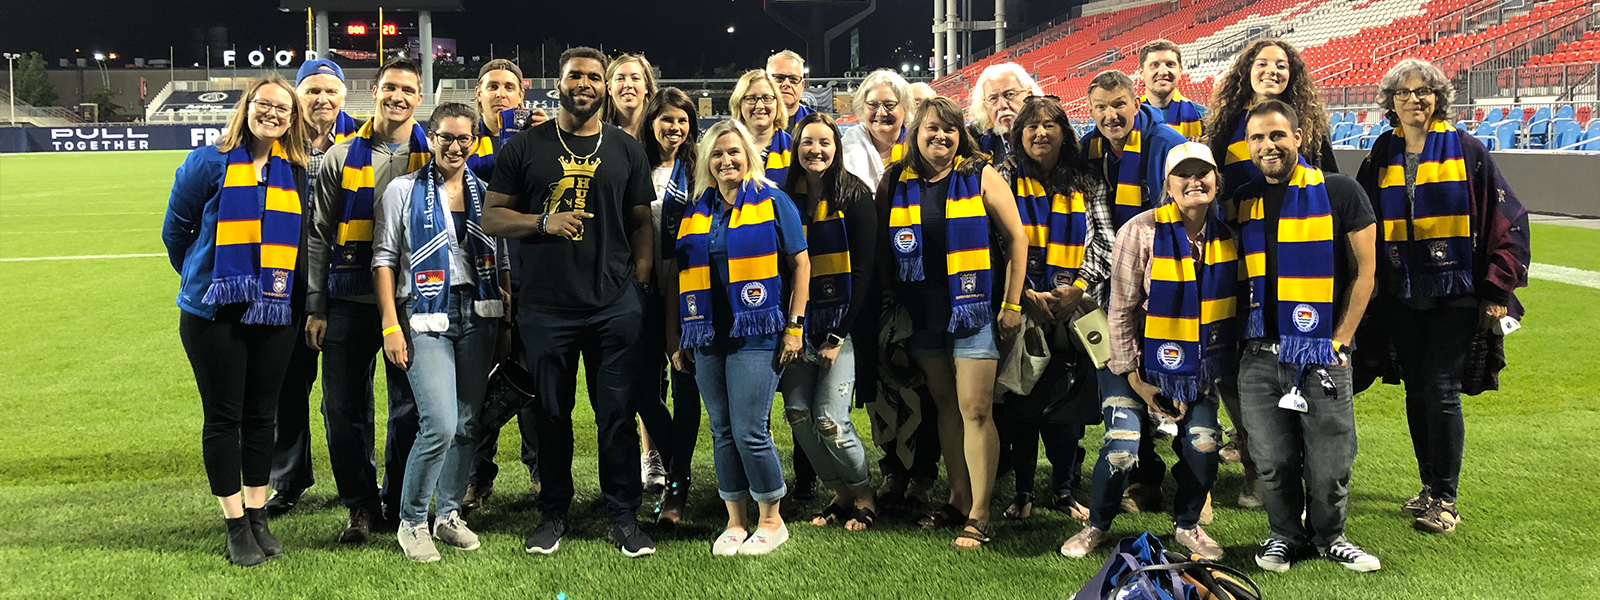 Our Toronto Area Alumni Chapter on the field for an Argos game